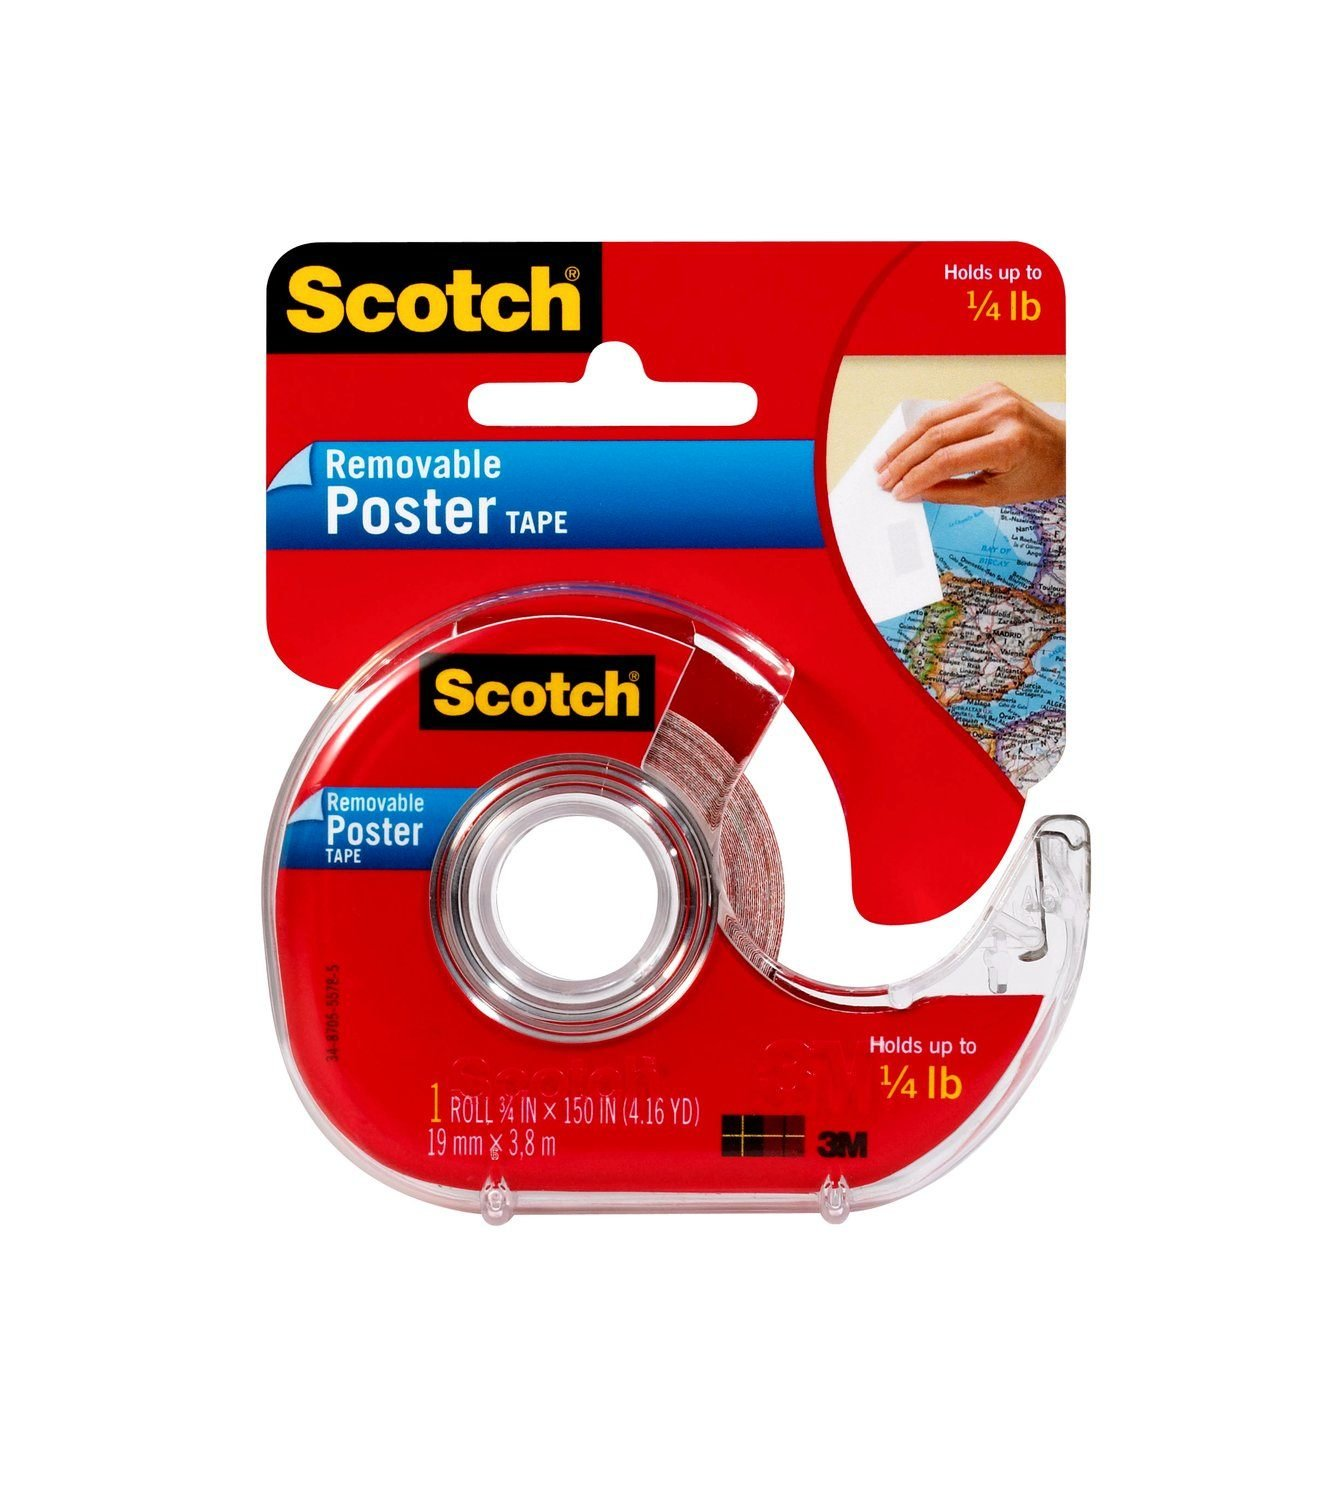 3M Scotch Removable Poster Tape 109